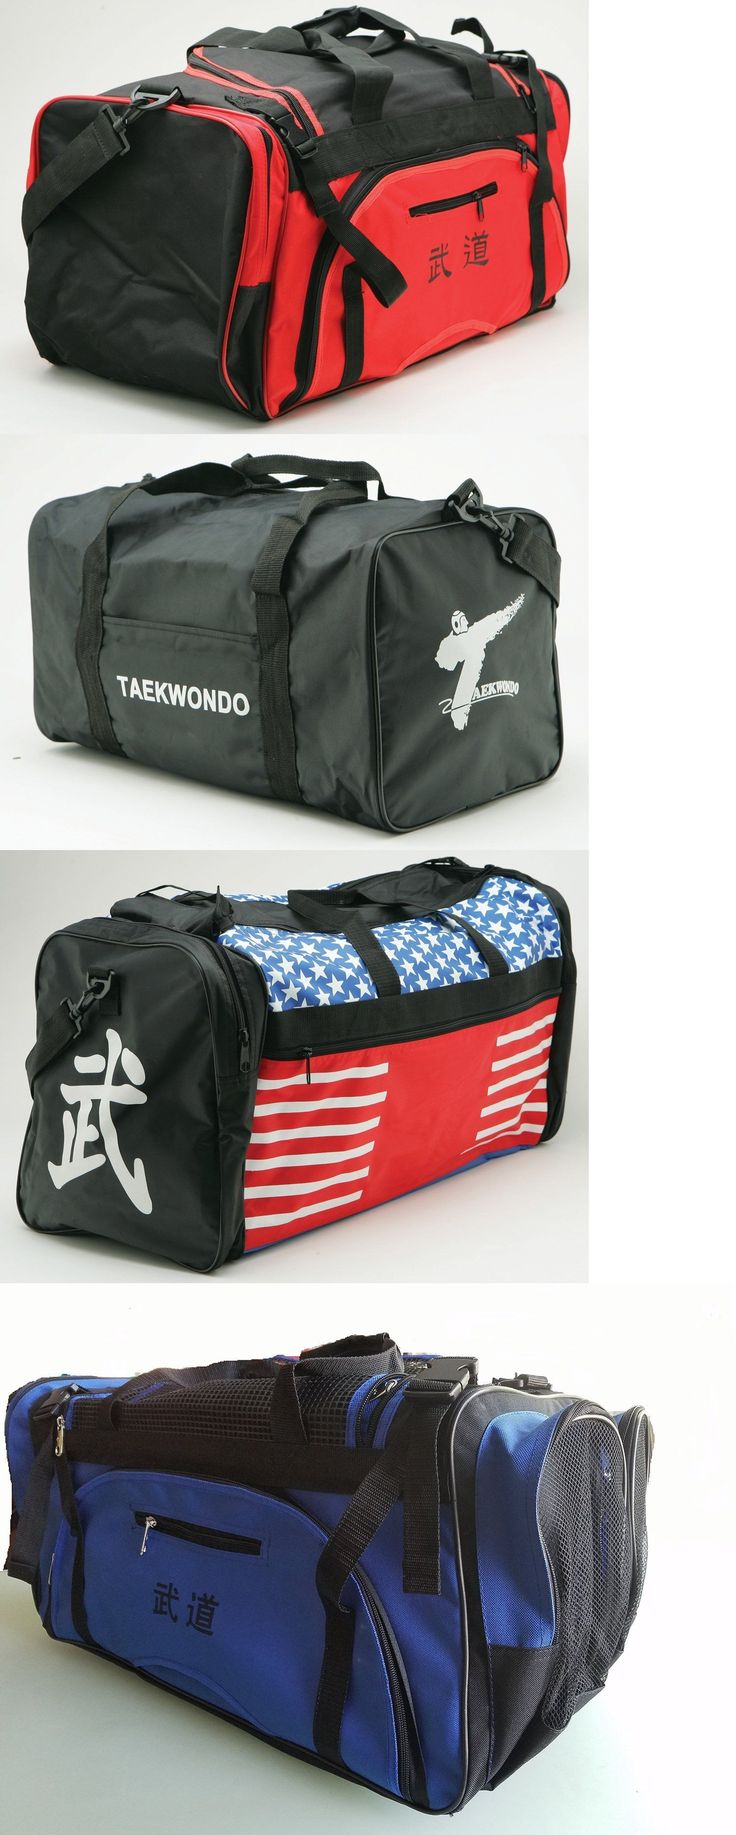 Other Combat Sport Training 179791: Martial Arts, Karate, Mma, Taekwondo Sparring Gear Equipment Bag BUY IT NOW ONLY: $42.99